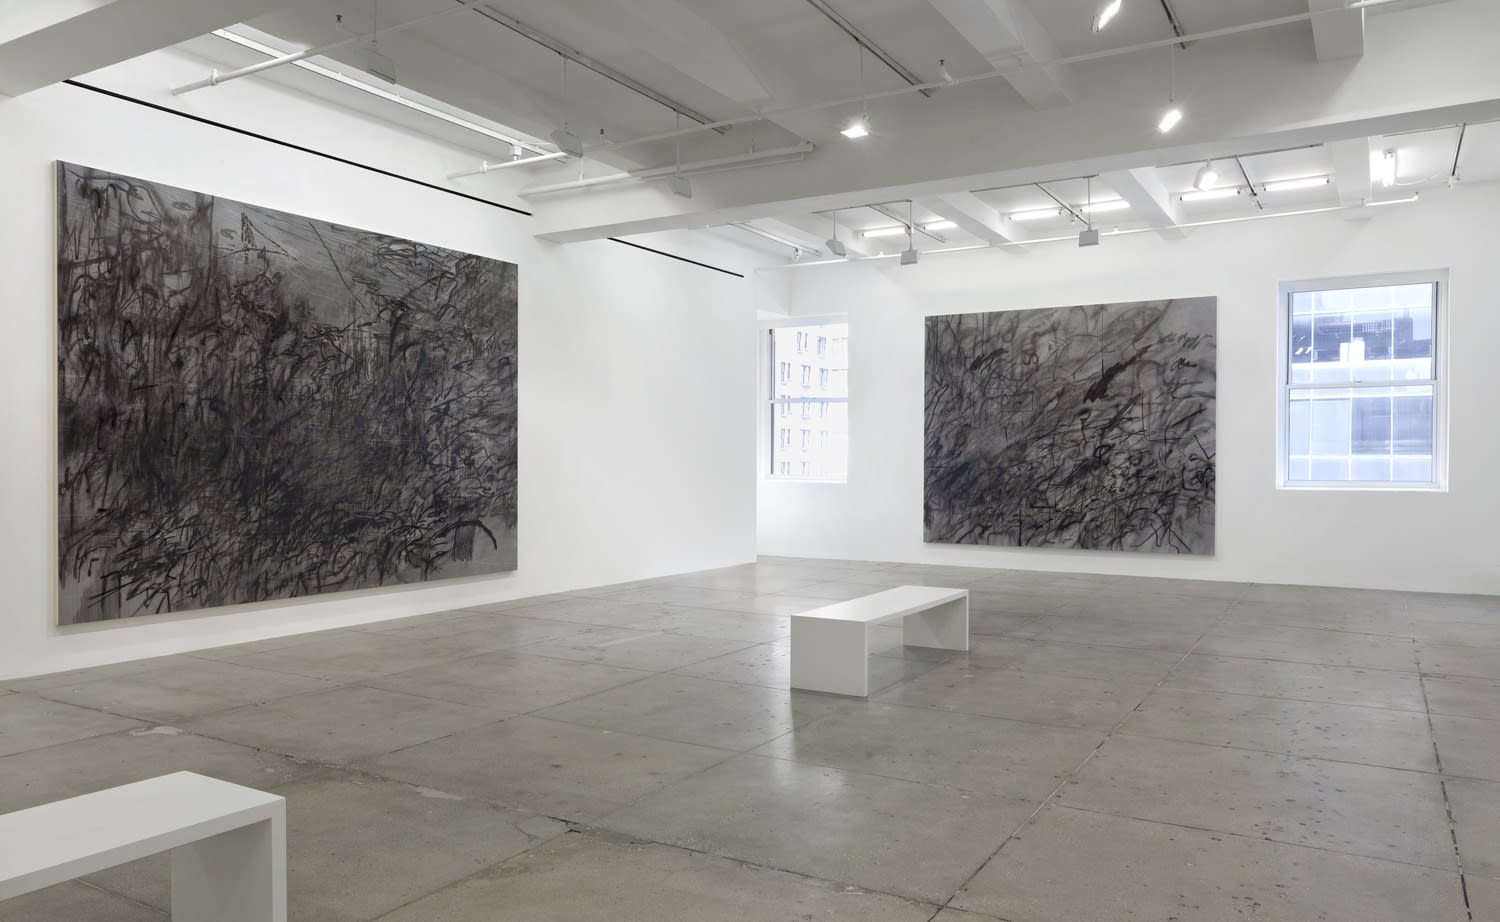 2 abstract paintings hang in a white gallery space with a bench.